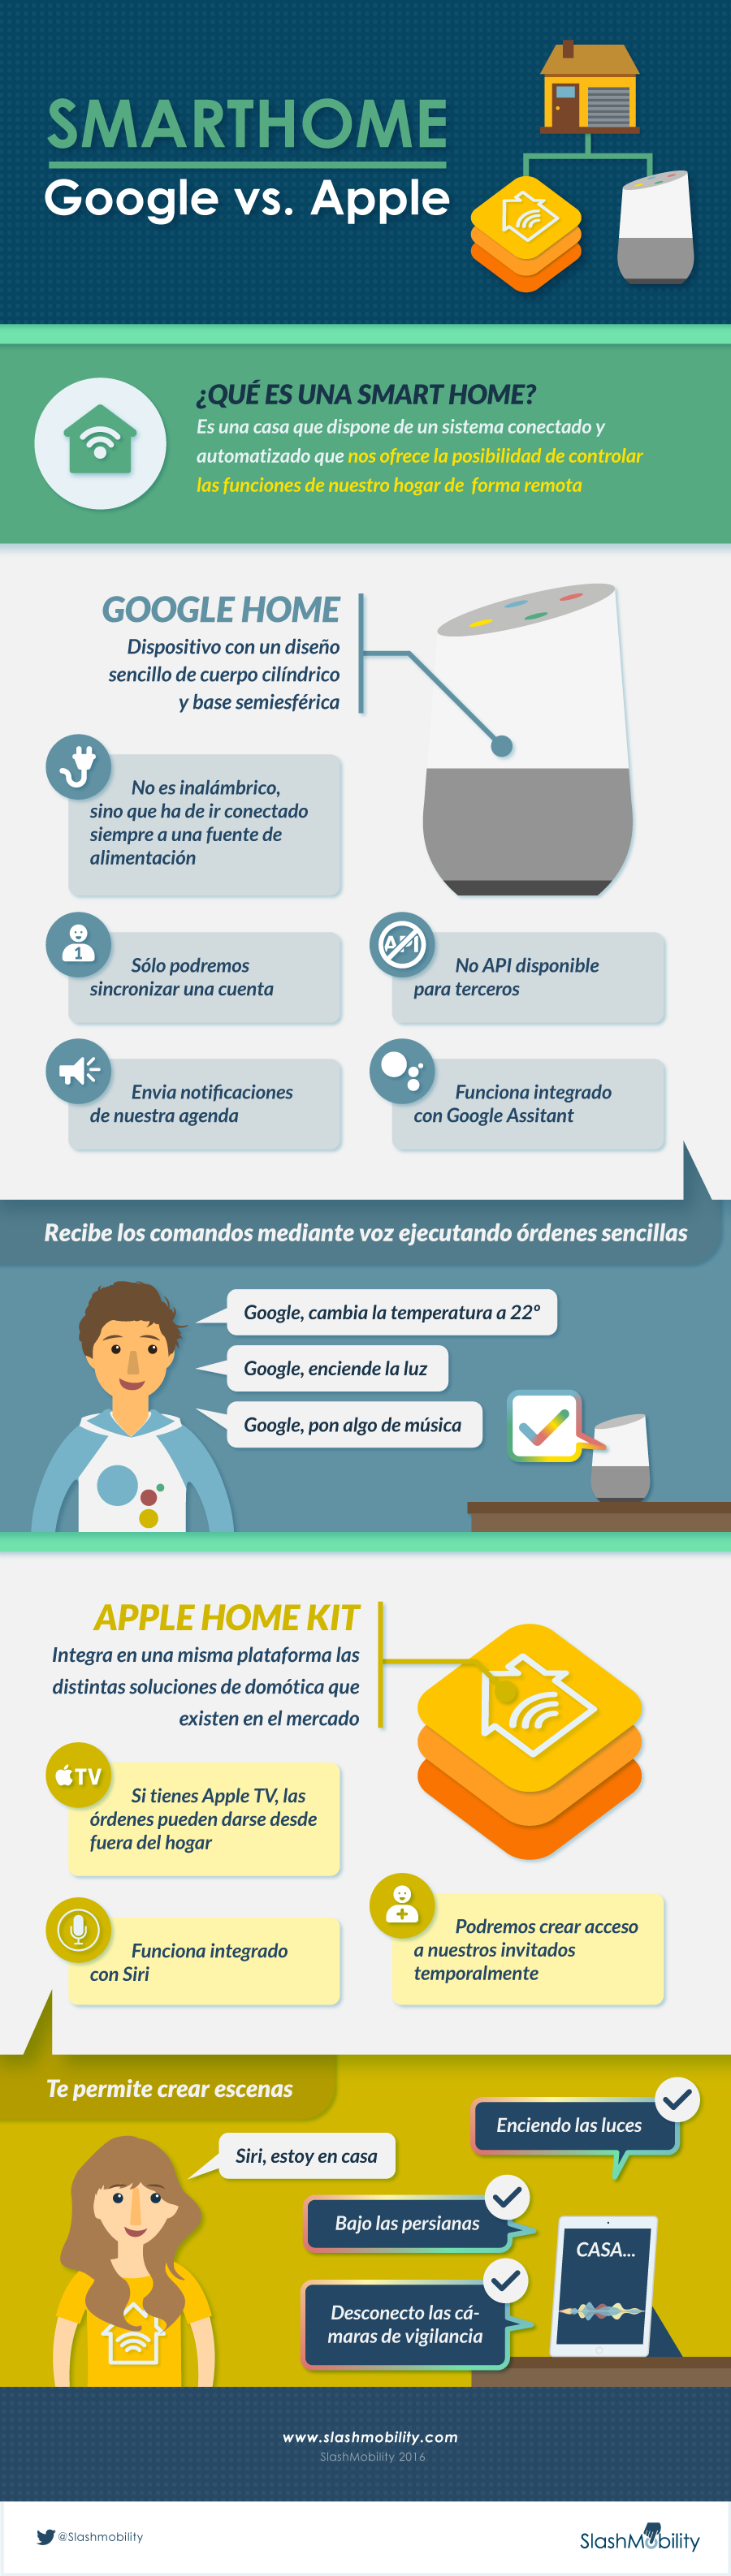 SmartHome: Google vs Apple